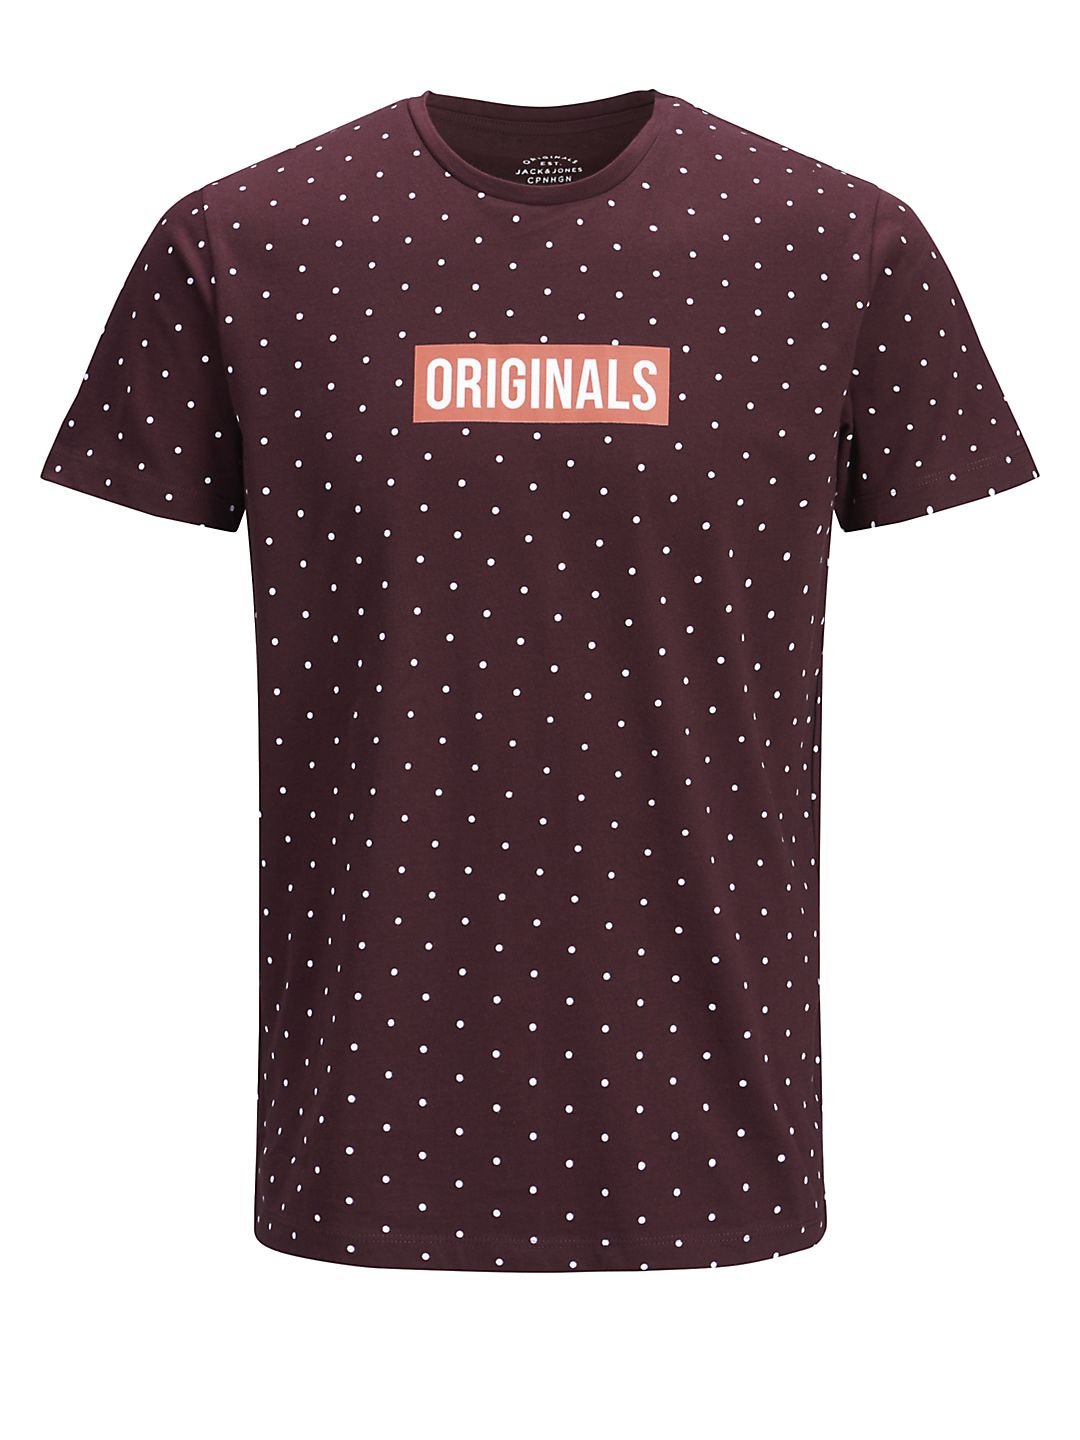 Polka Dot-Print Crewneck Cotton Tee